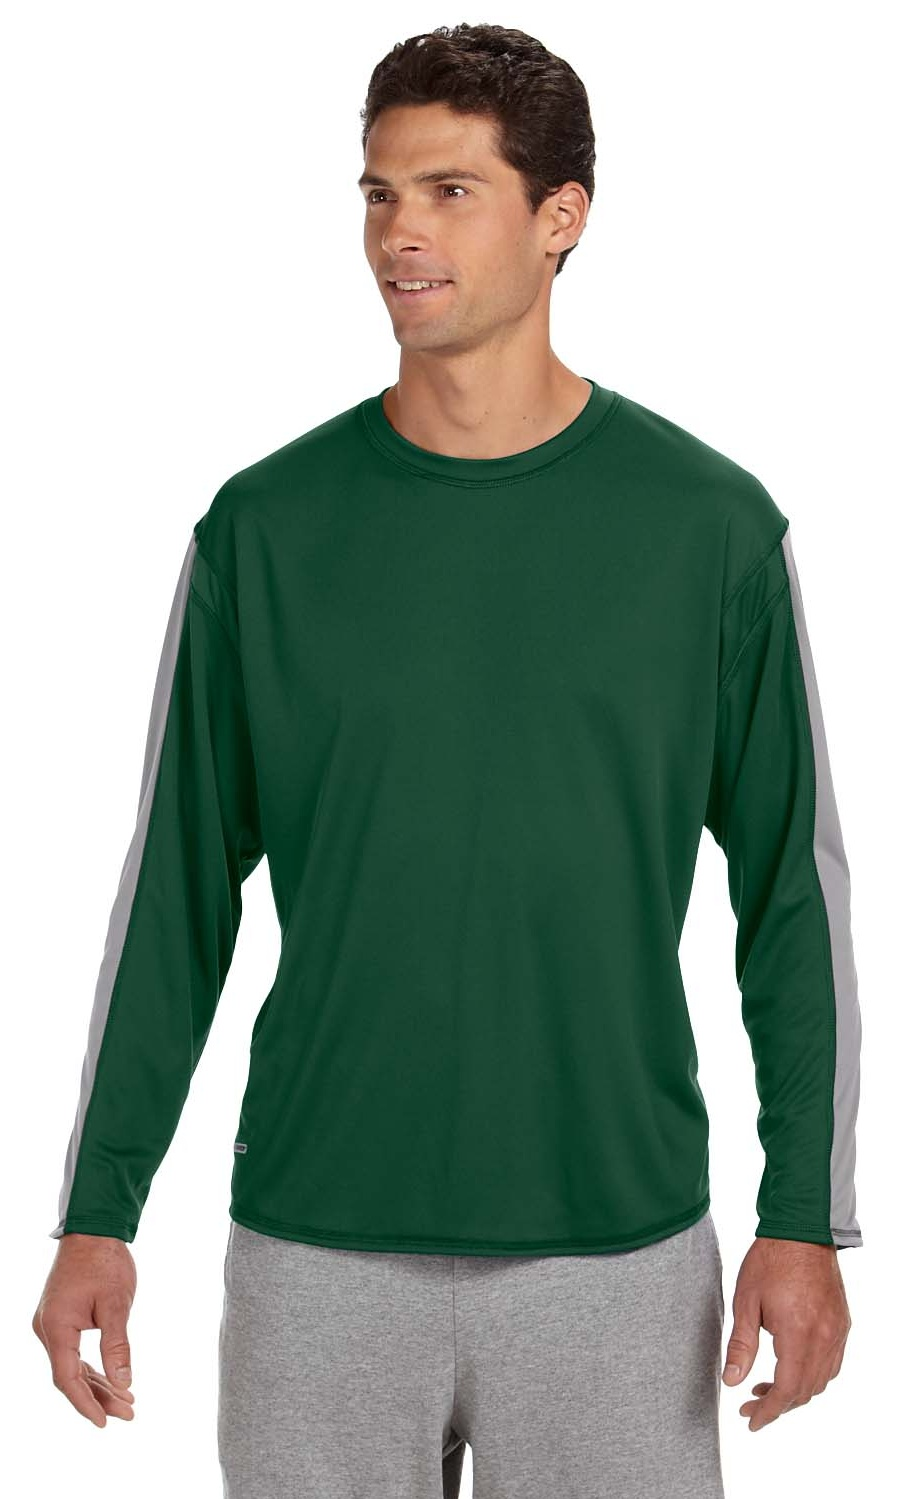 36b1dfd22bb3 Long Sleeve Compression Shirt Target – EDGE Engineering and ...